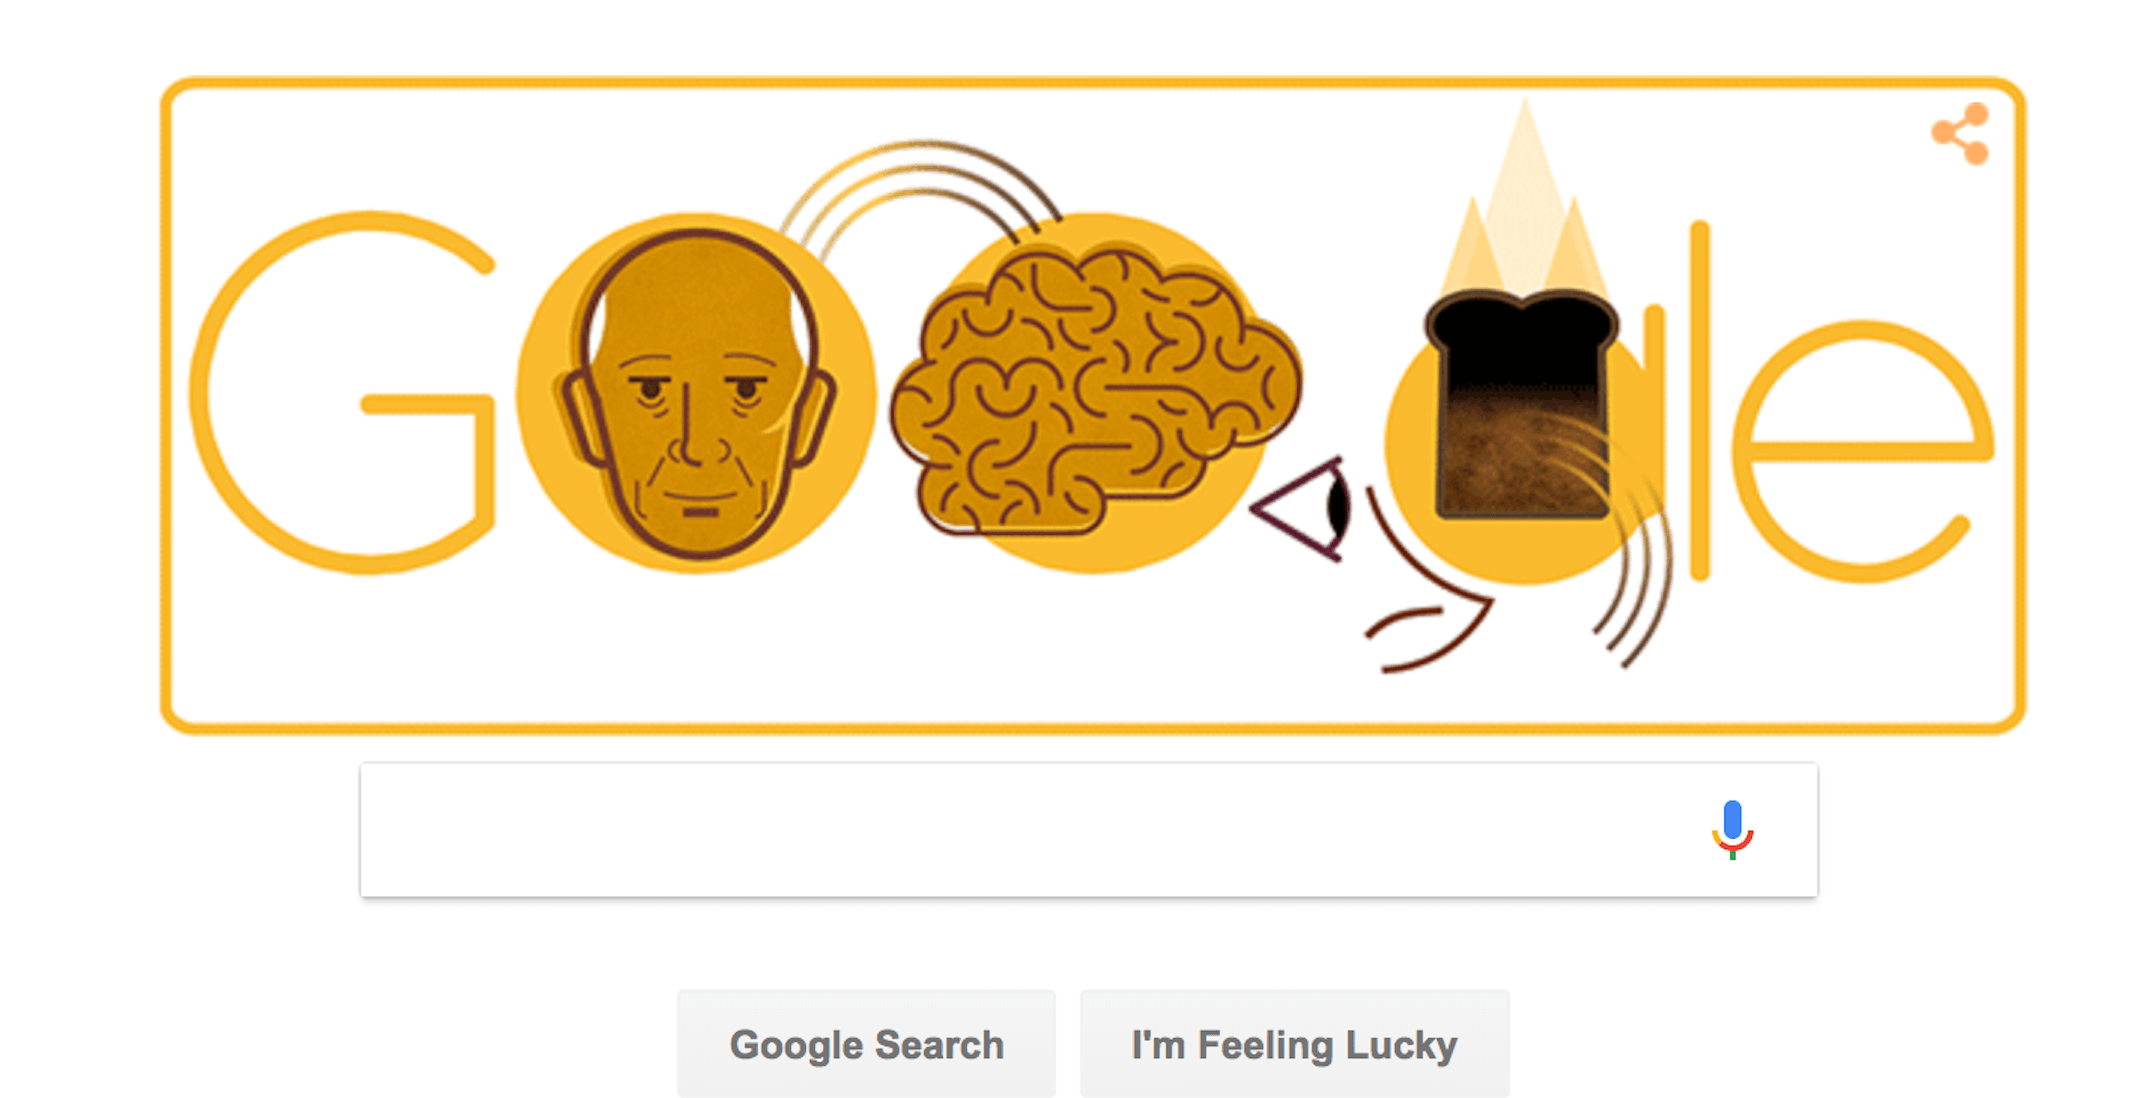 Today's 'Google Doodle' is dedicated to a famous Montrealer